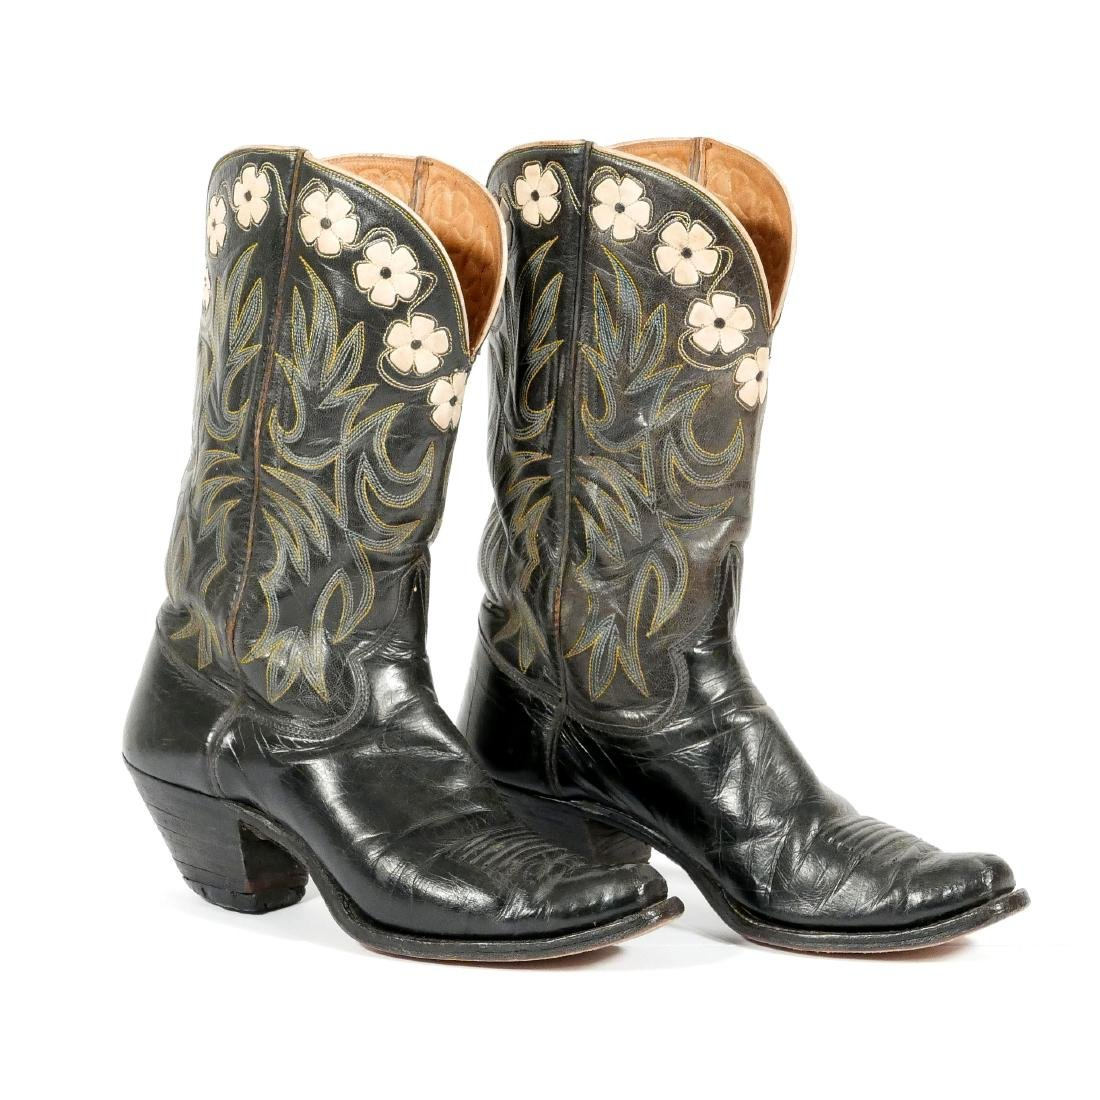 C.H. Hyer Benchmade Cowboy Boots - 4